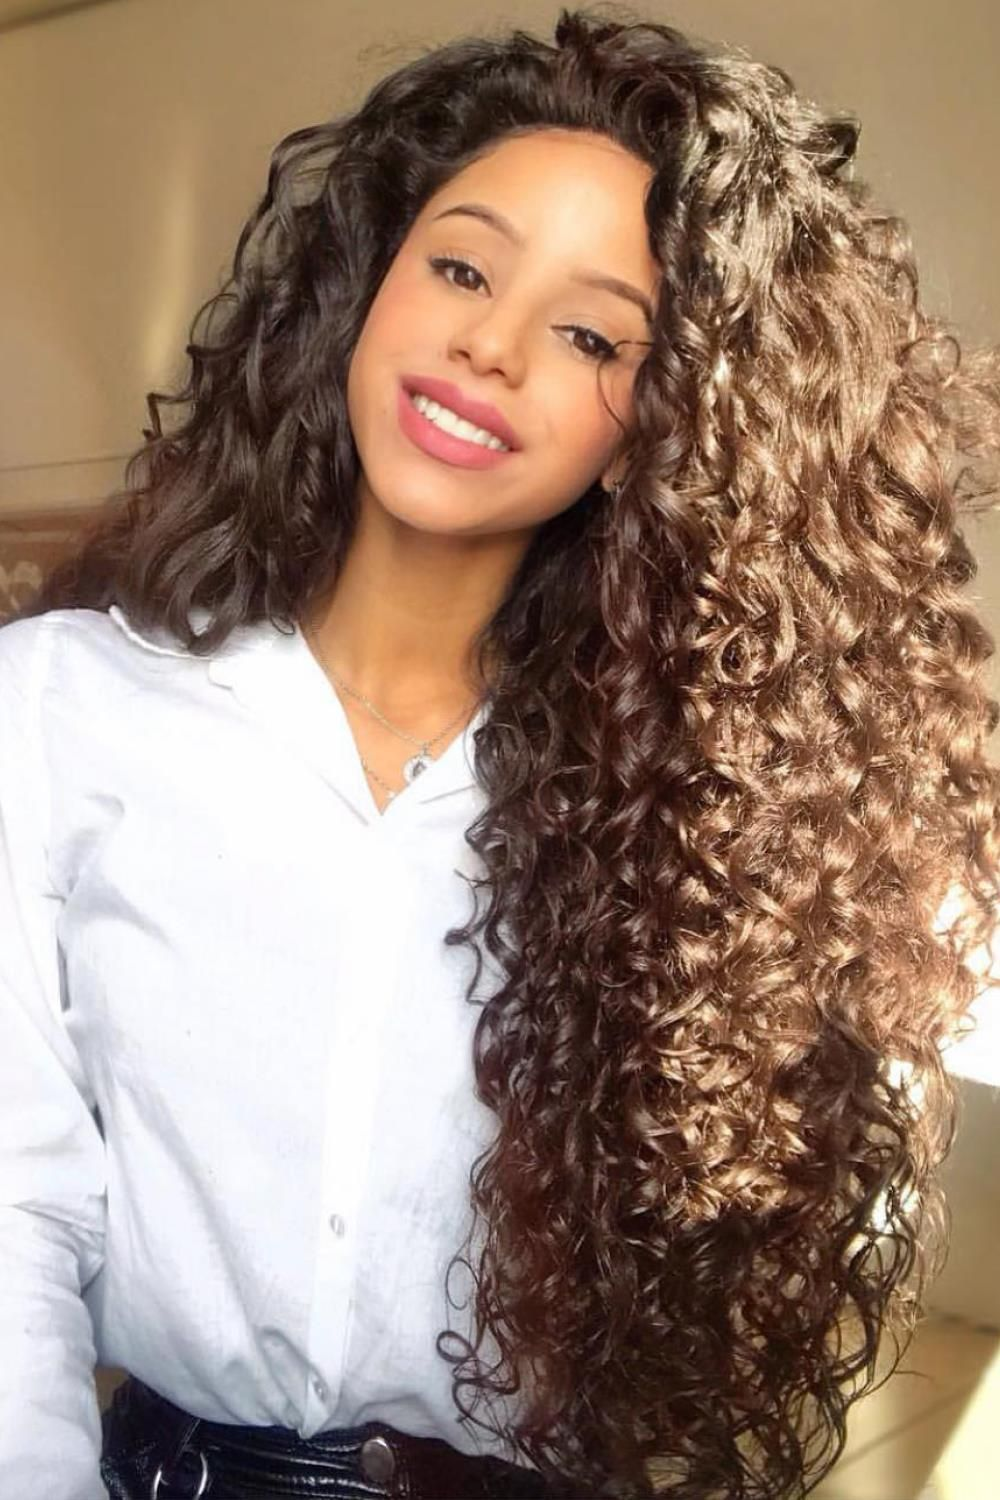 Hair Trends That Succeed Are Those In 2020 Curly Hair Styles Long Hair Styles Beautiful Curly Hair